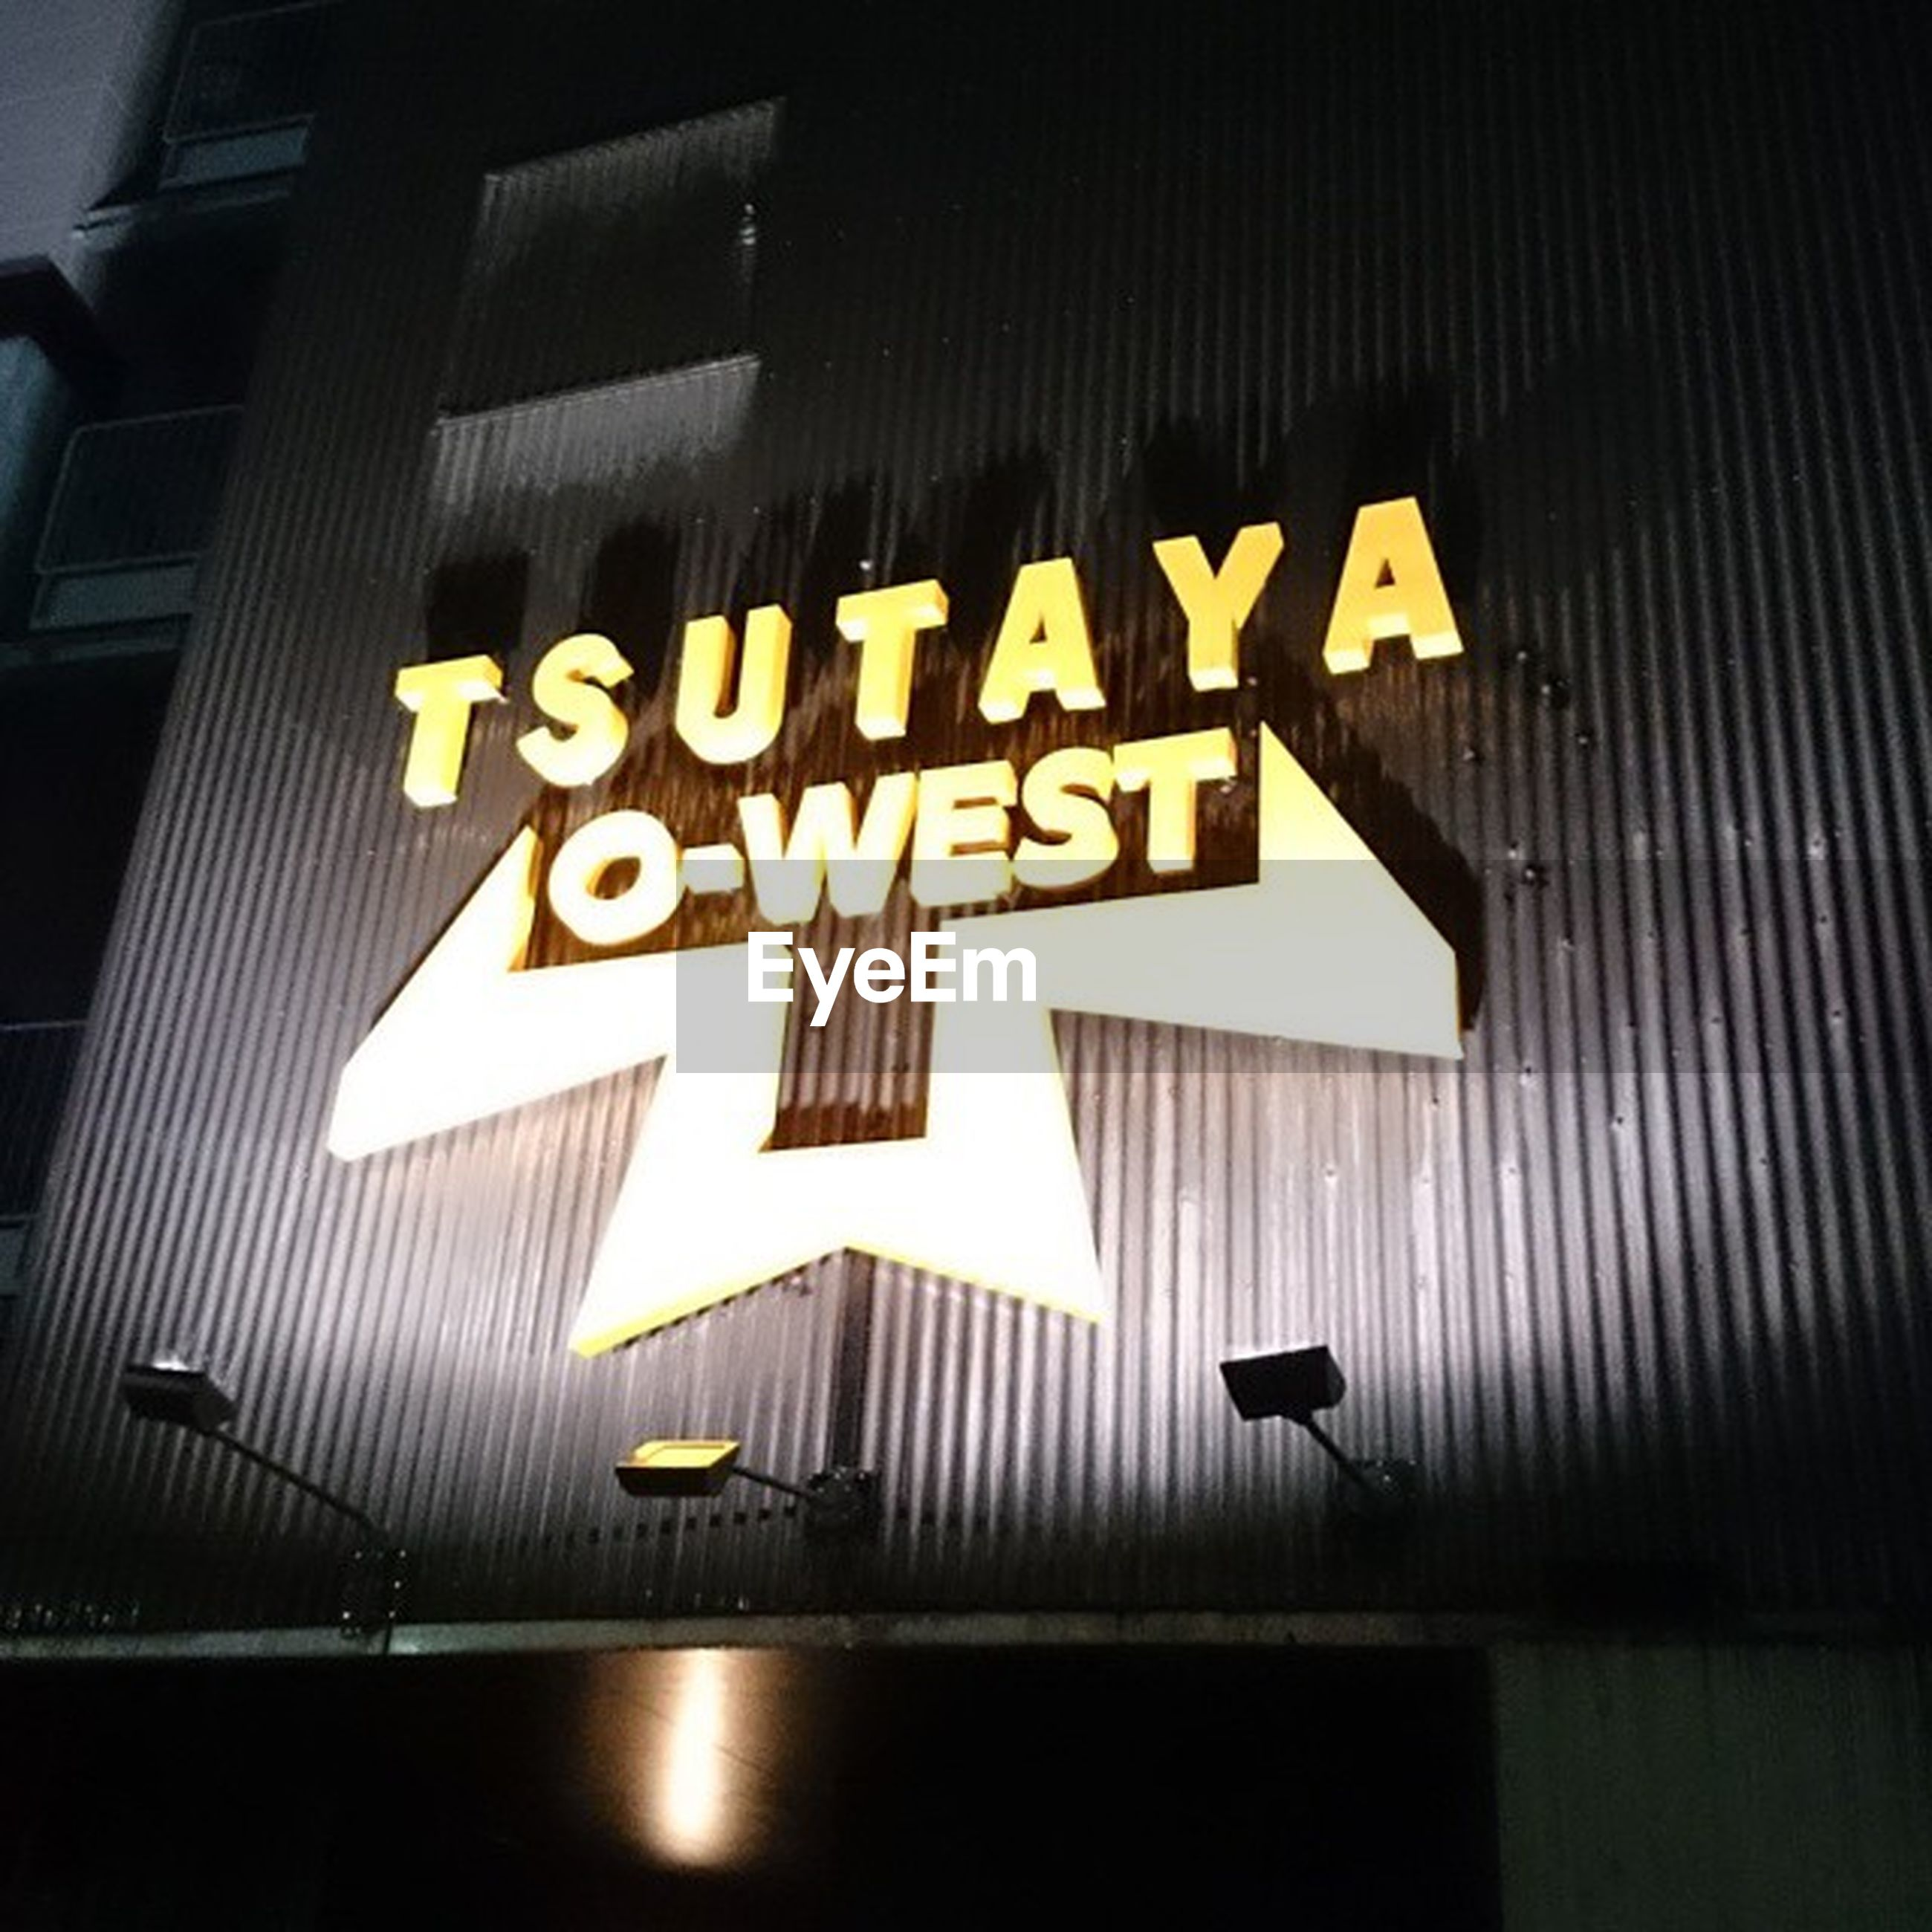 text, western script, communication, information sign, sign, illuminated, guidance, low angle view, information, capital letter, built structure, arrow symbol, directional sign, architecture, non-western script, night, road sign, building exterior, lighting equipment, commercial sign